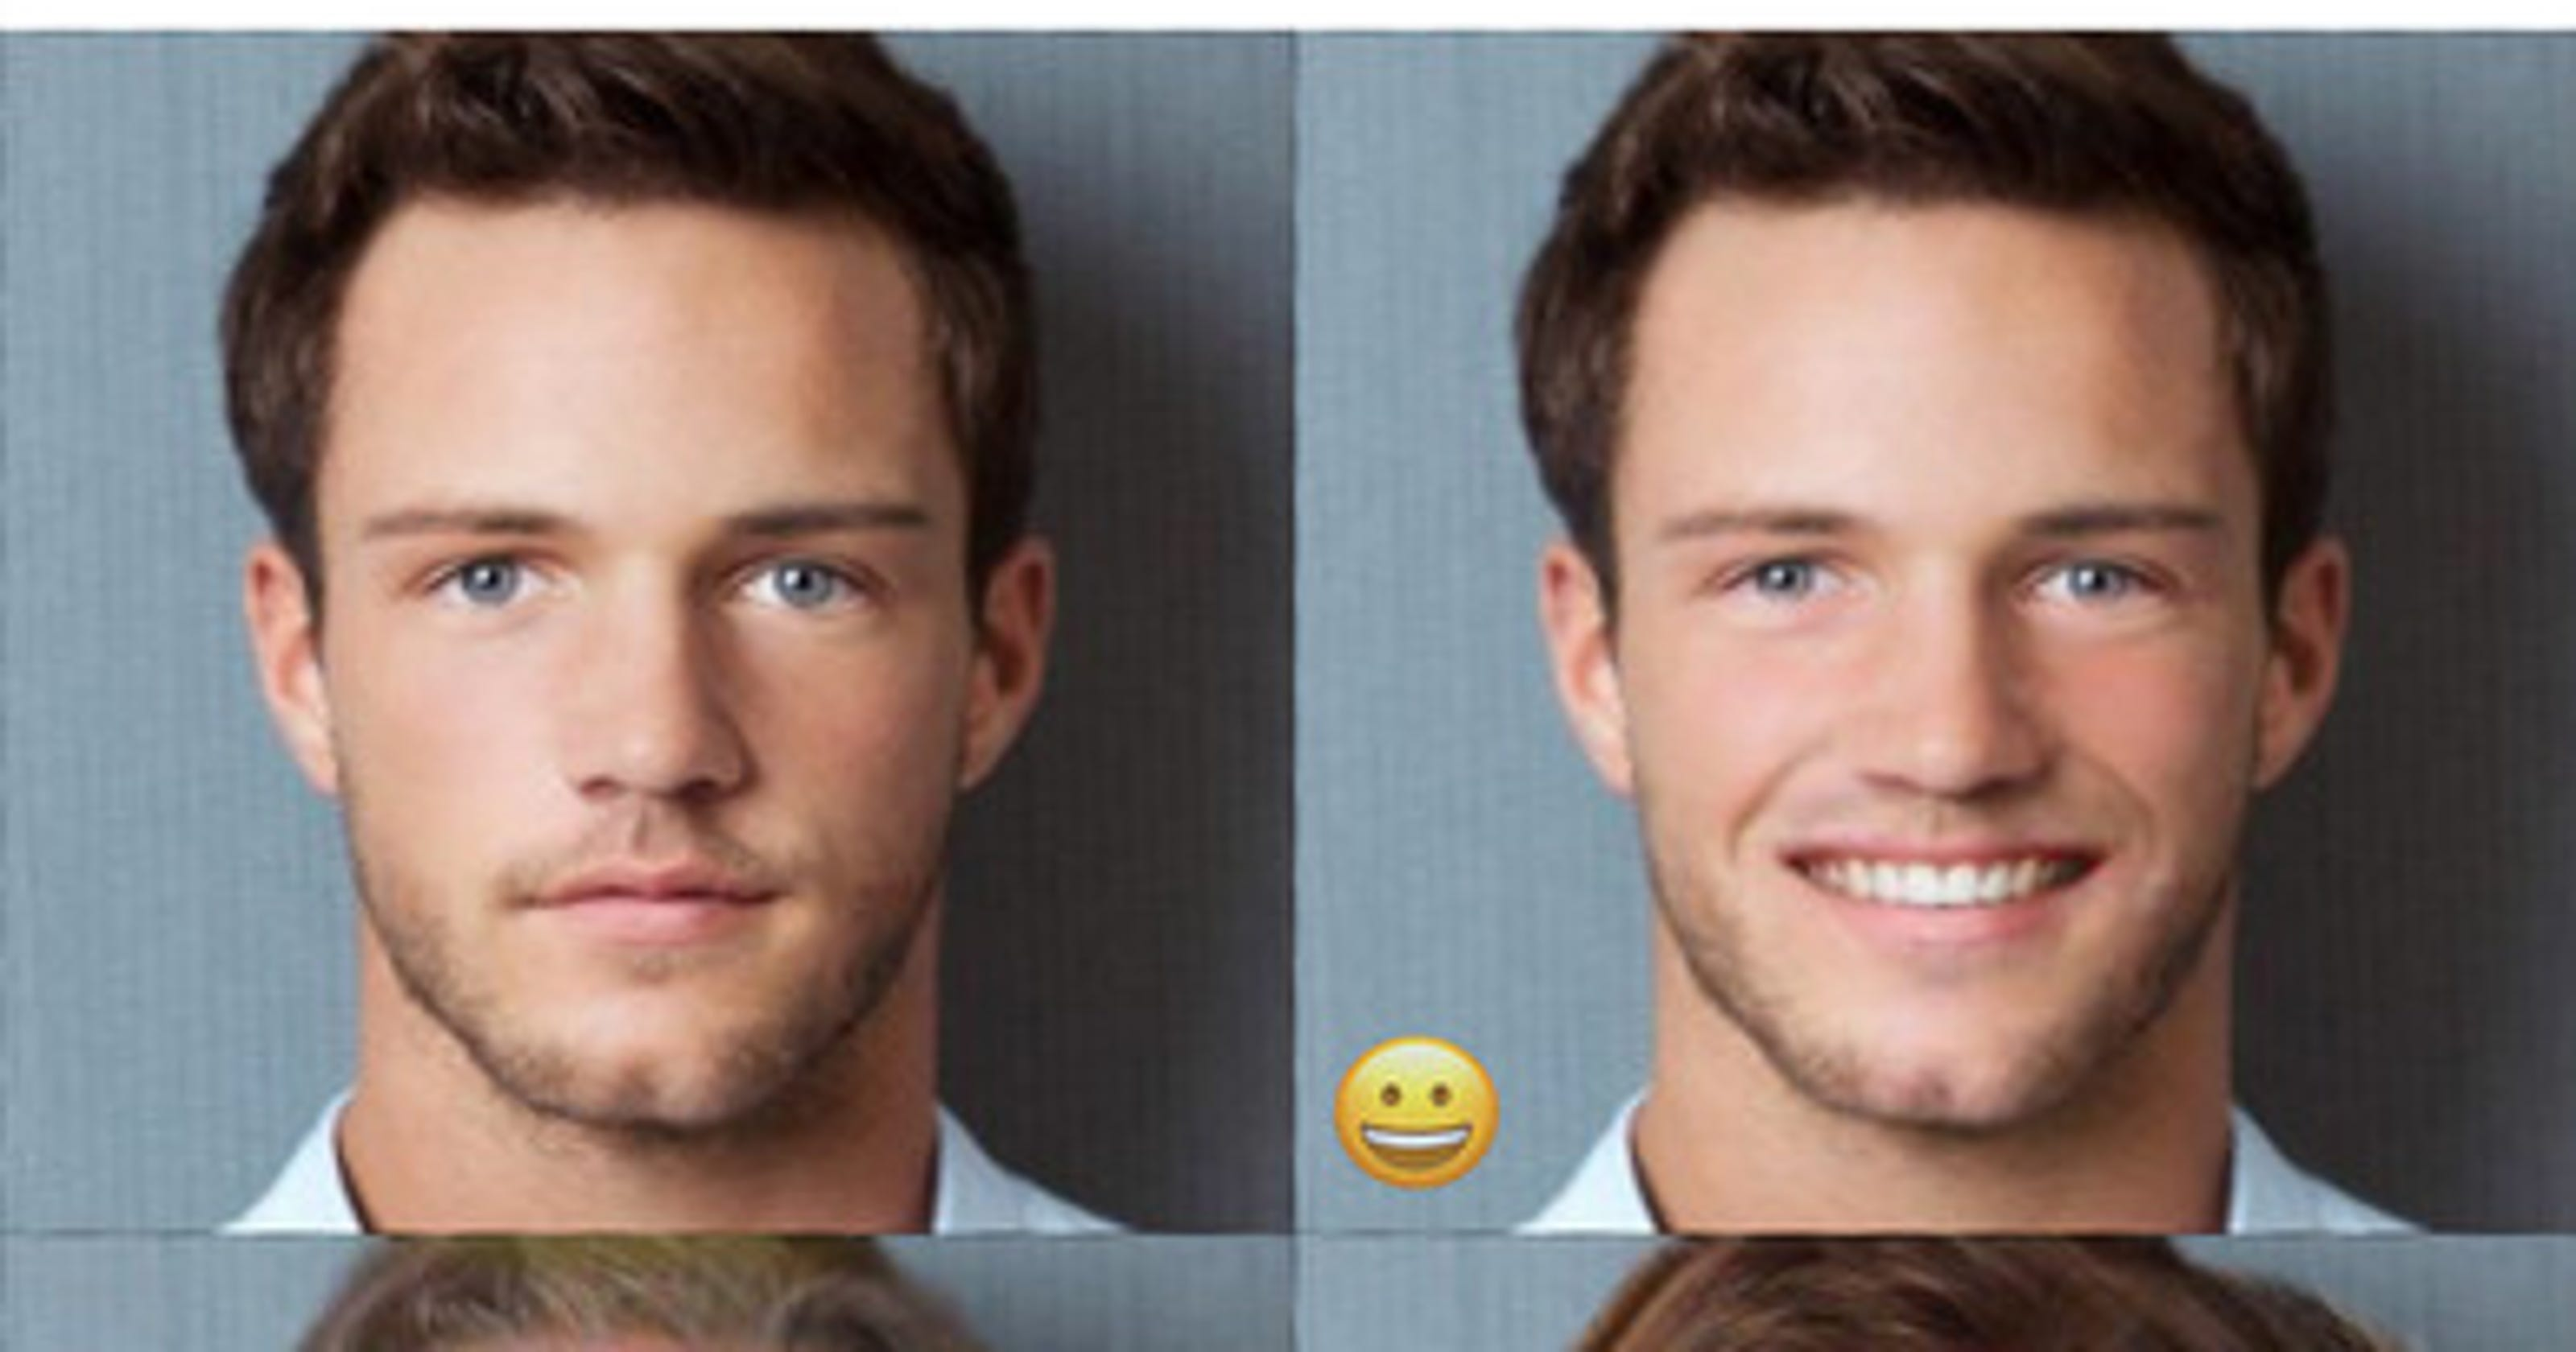 FaceApp's privacy concerns: How the app compares to Facebook, Instagram and SnapChat terms